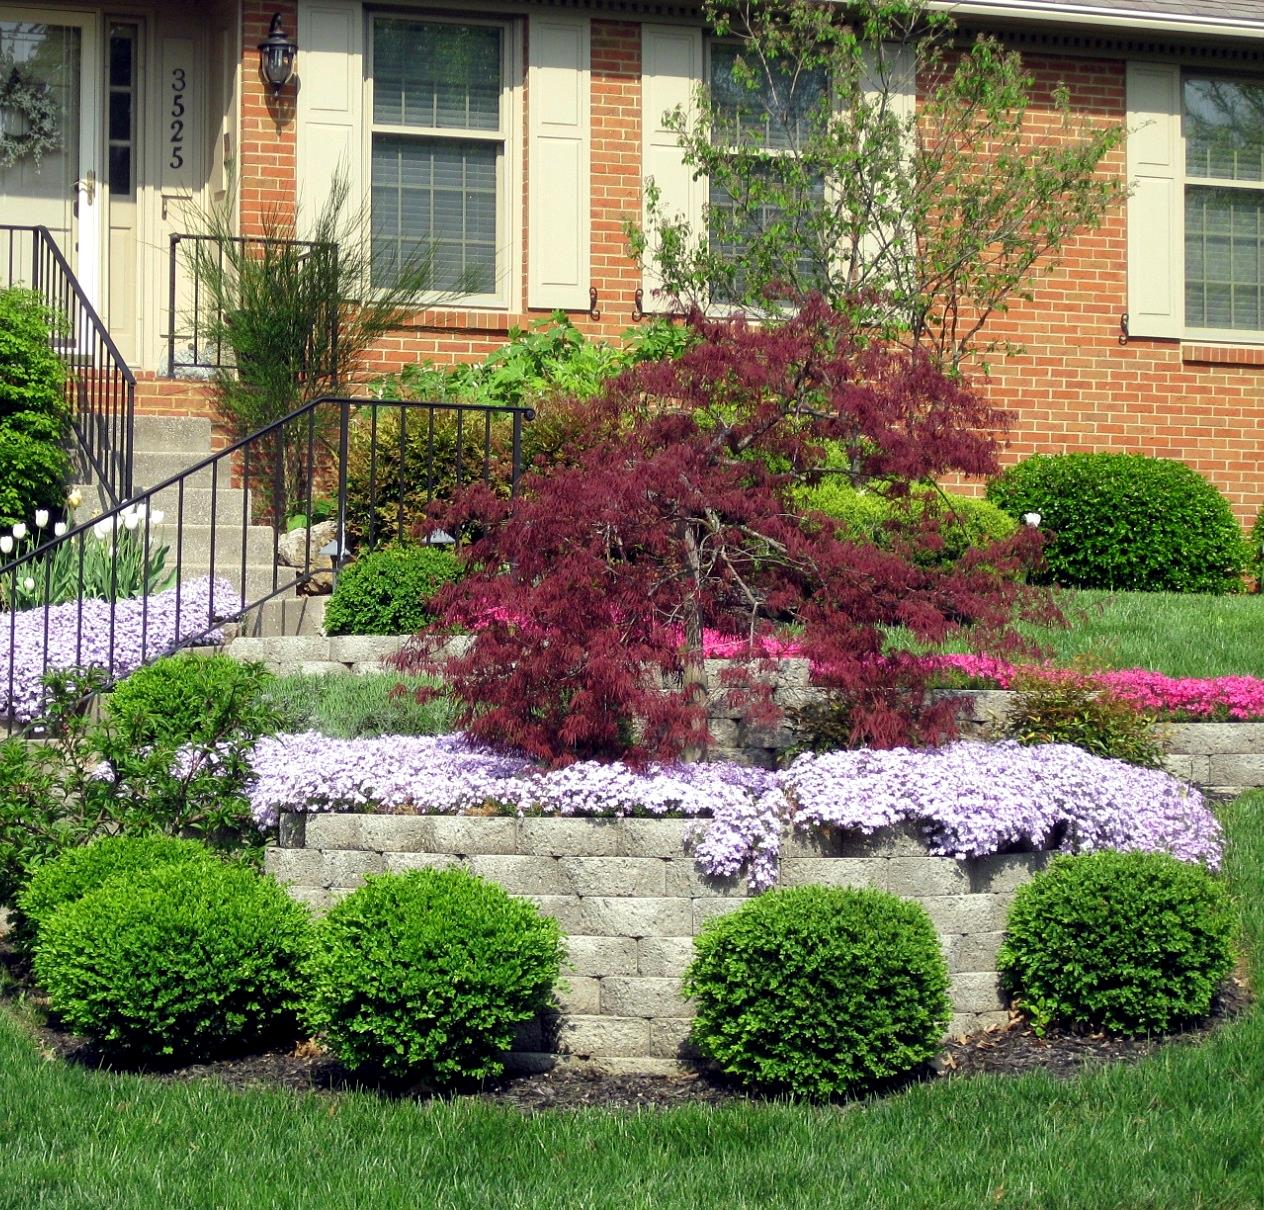 Acer palmatum Japanese Maple Uses: The slow growth and small size of